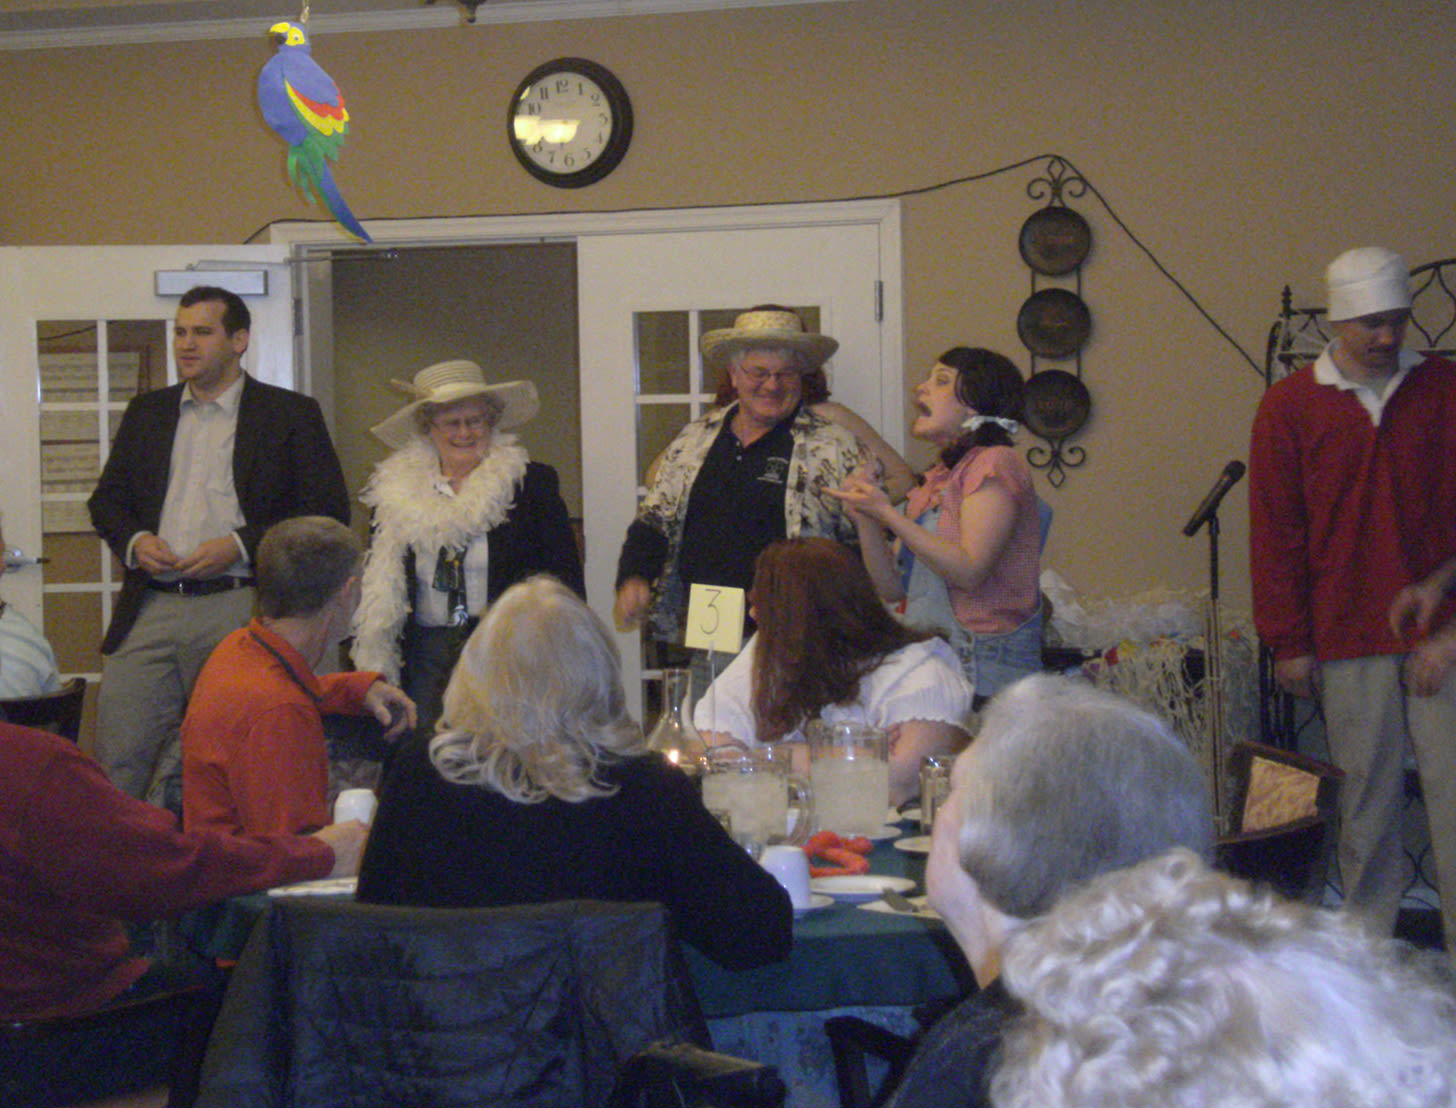 Residents playing a murder mystery game at Heritage Green Assisted Living and Memory Care in Lynchburg, Virginia